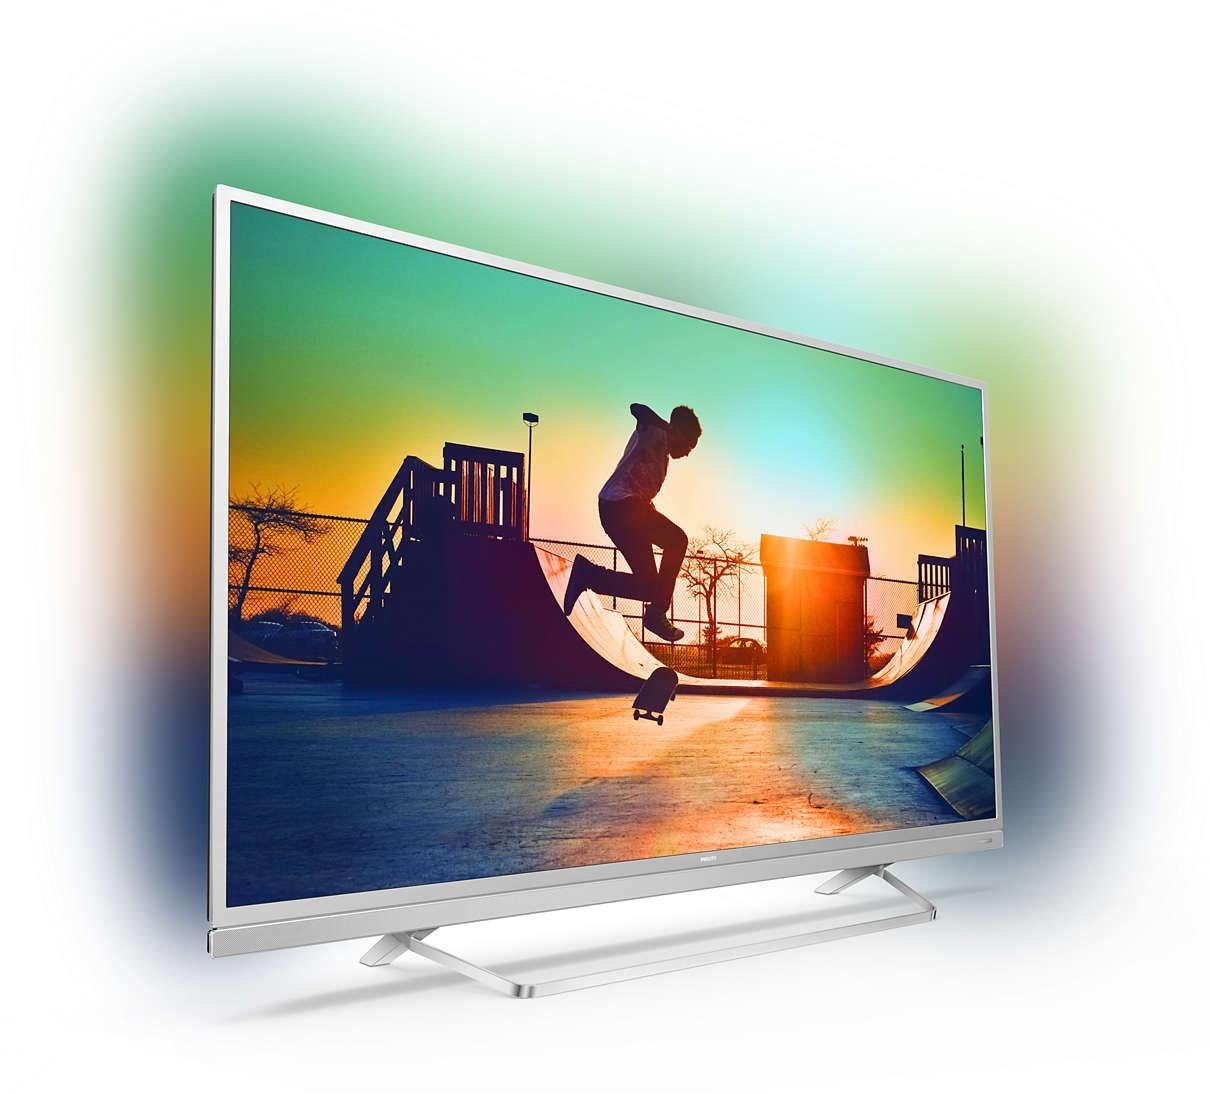 Philips 49PUS6482/12 LED-Fernseher (49 Zoll, 4K Ultra HD, Smart-TV, Ambilight)